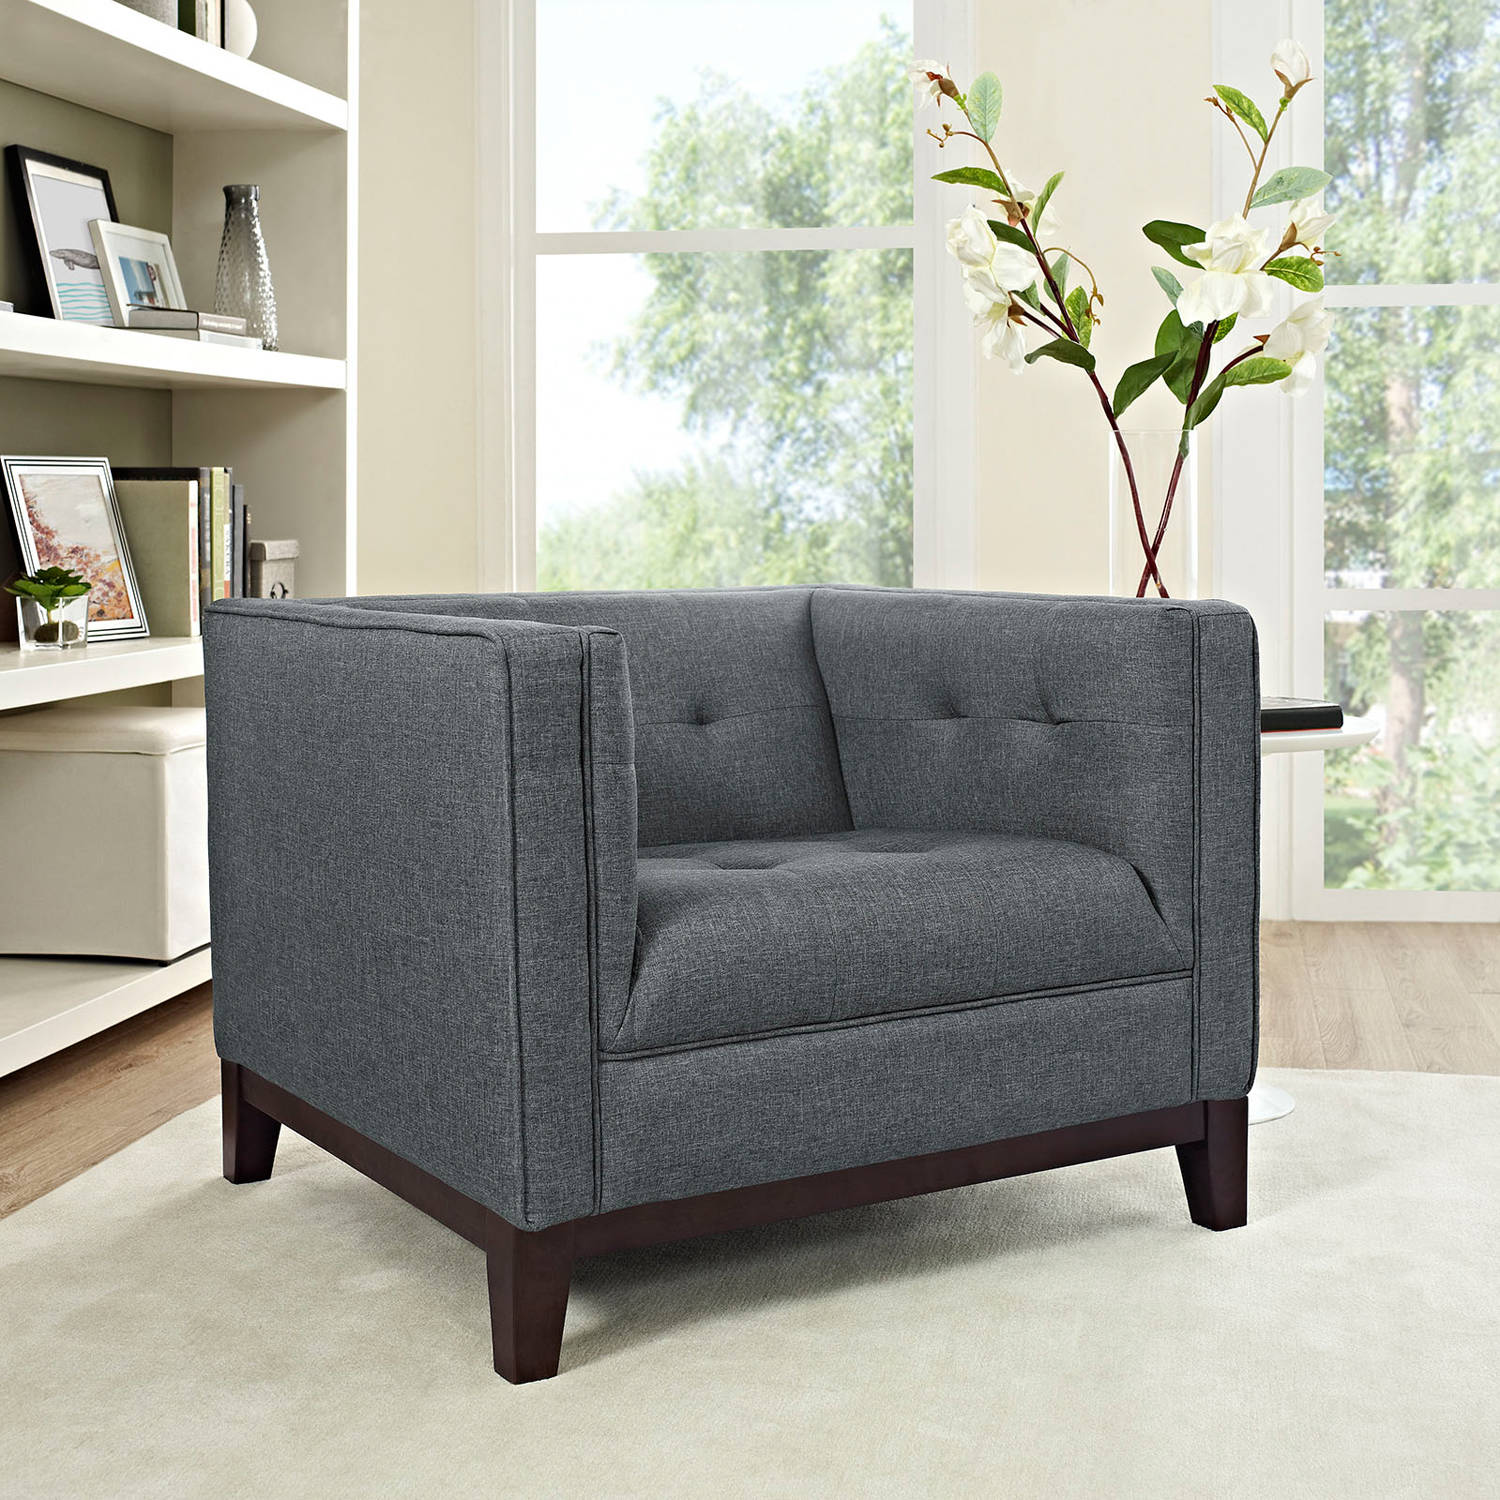 Modway Serve Upholstered Tufted Armchair, Multiple Colors by Modway